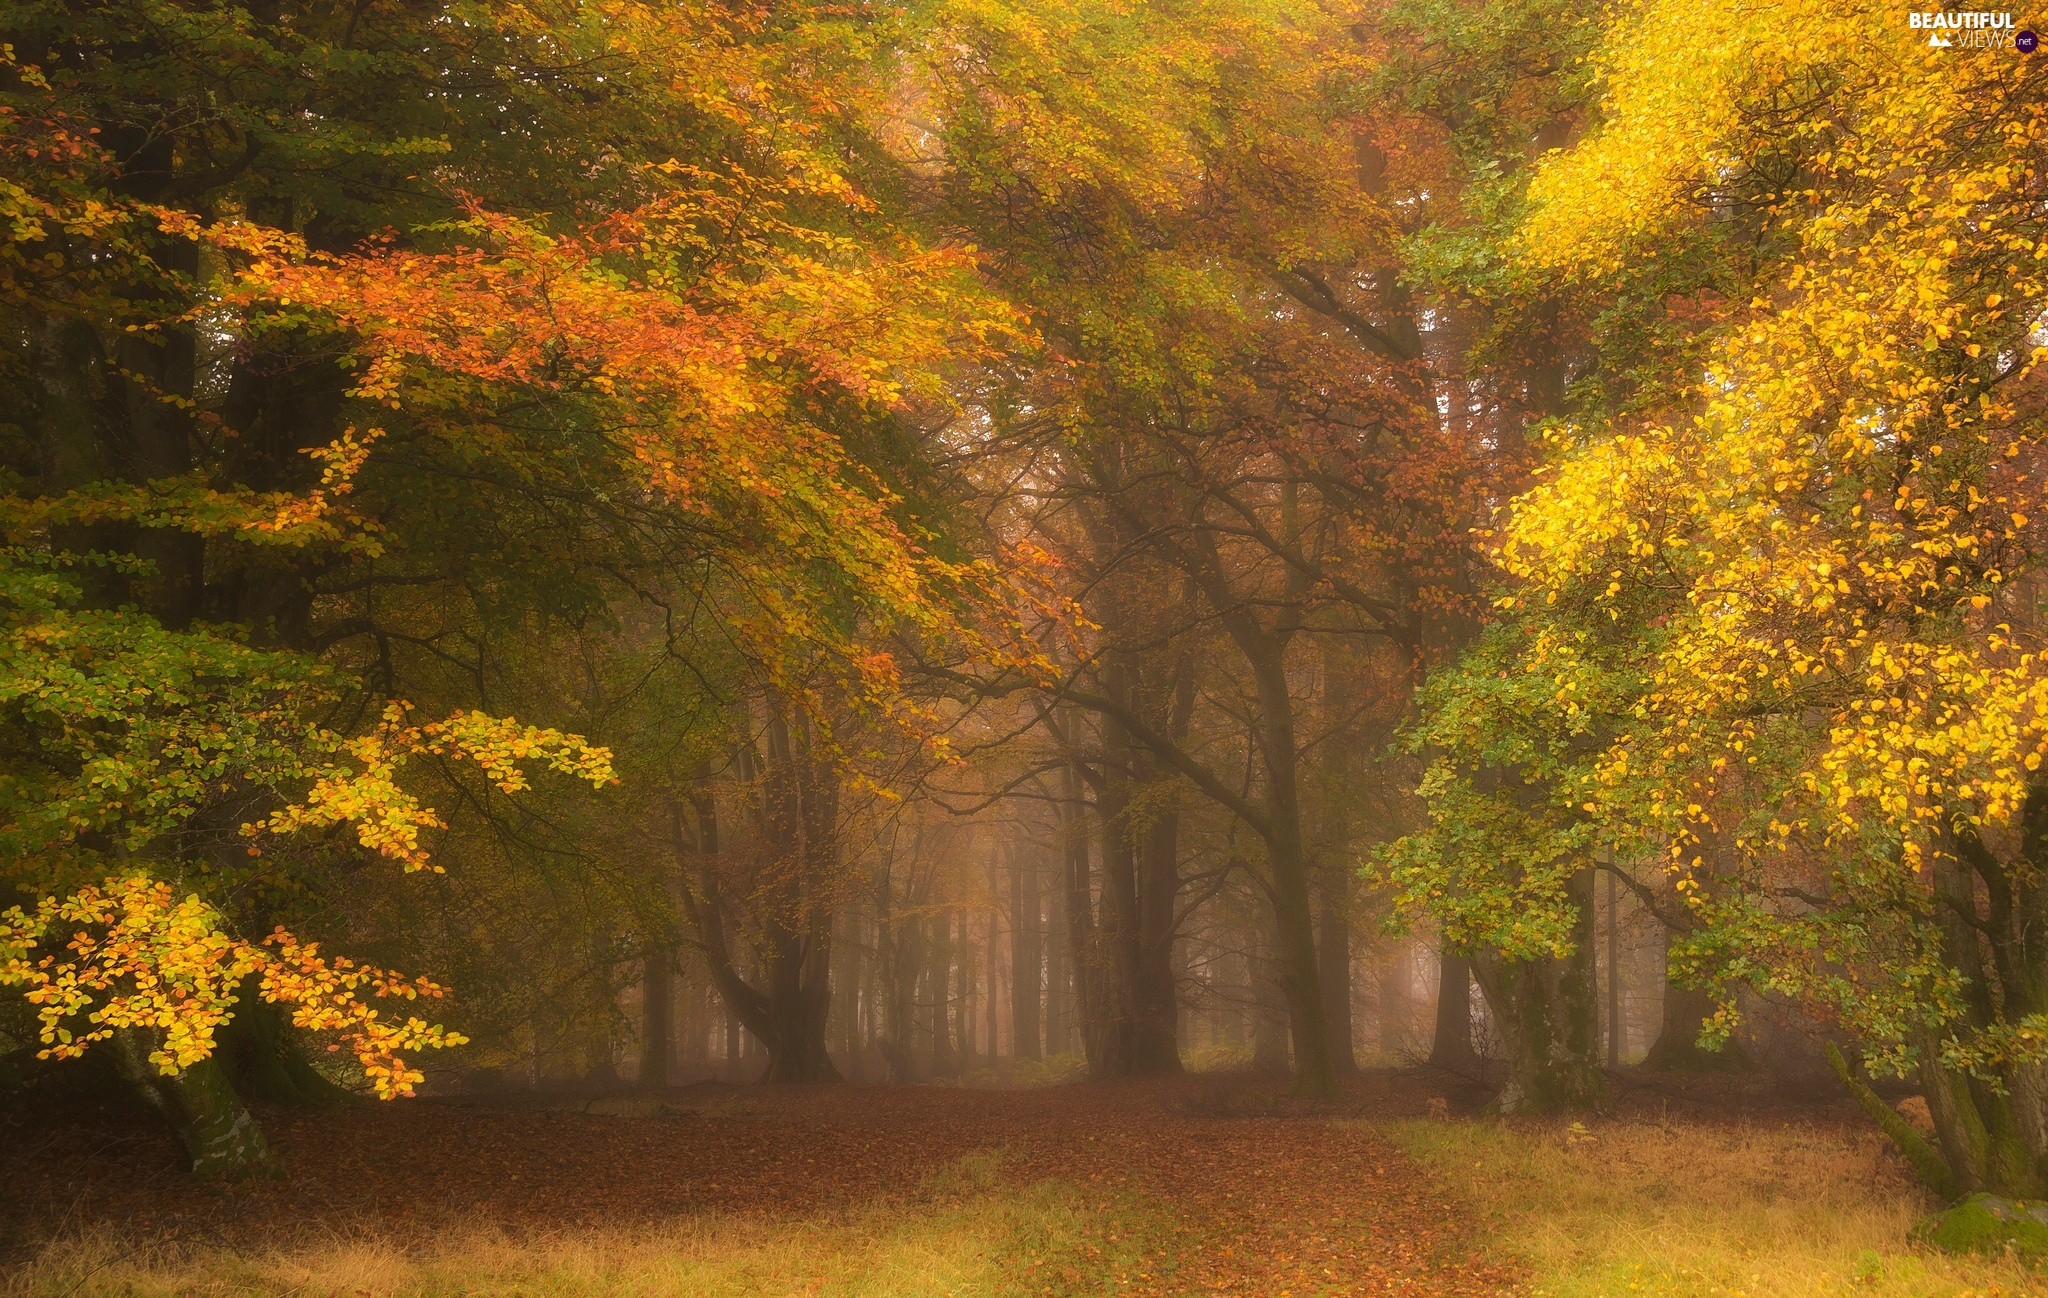 trees, viewes, autumn, forest, Fog